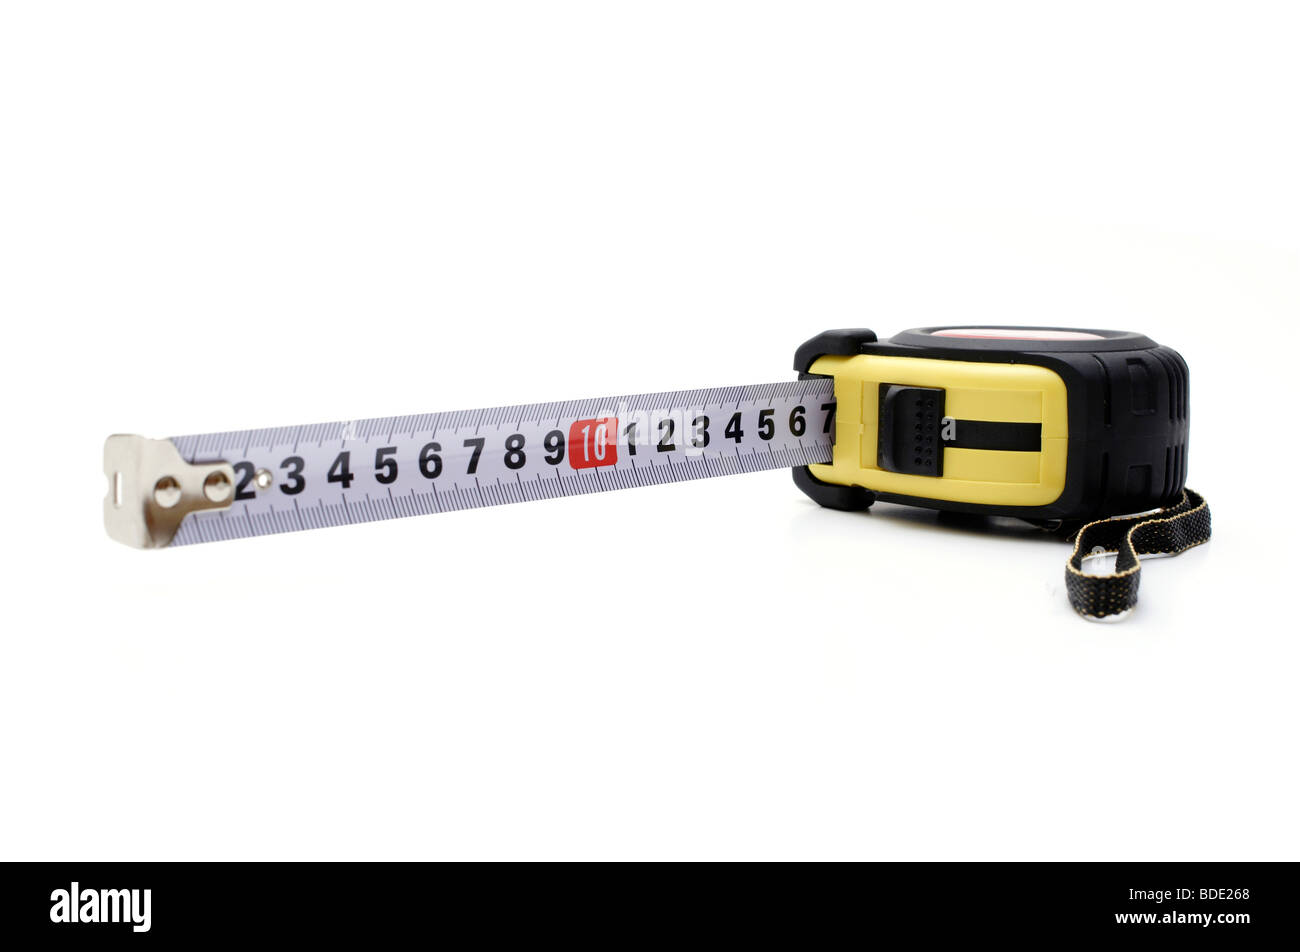 Opened tape measure on white isolated background - Stock Image